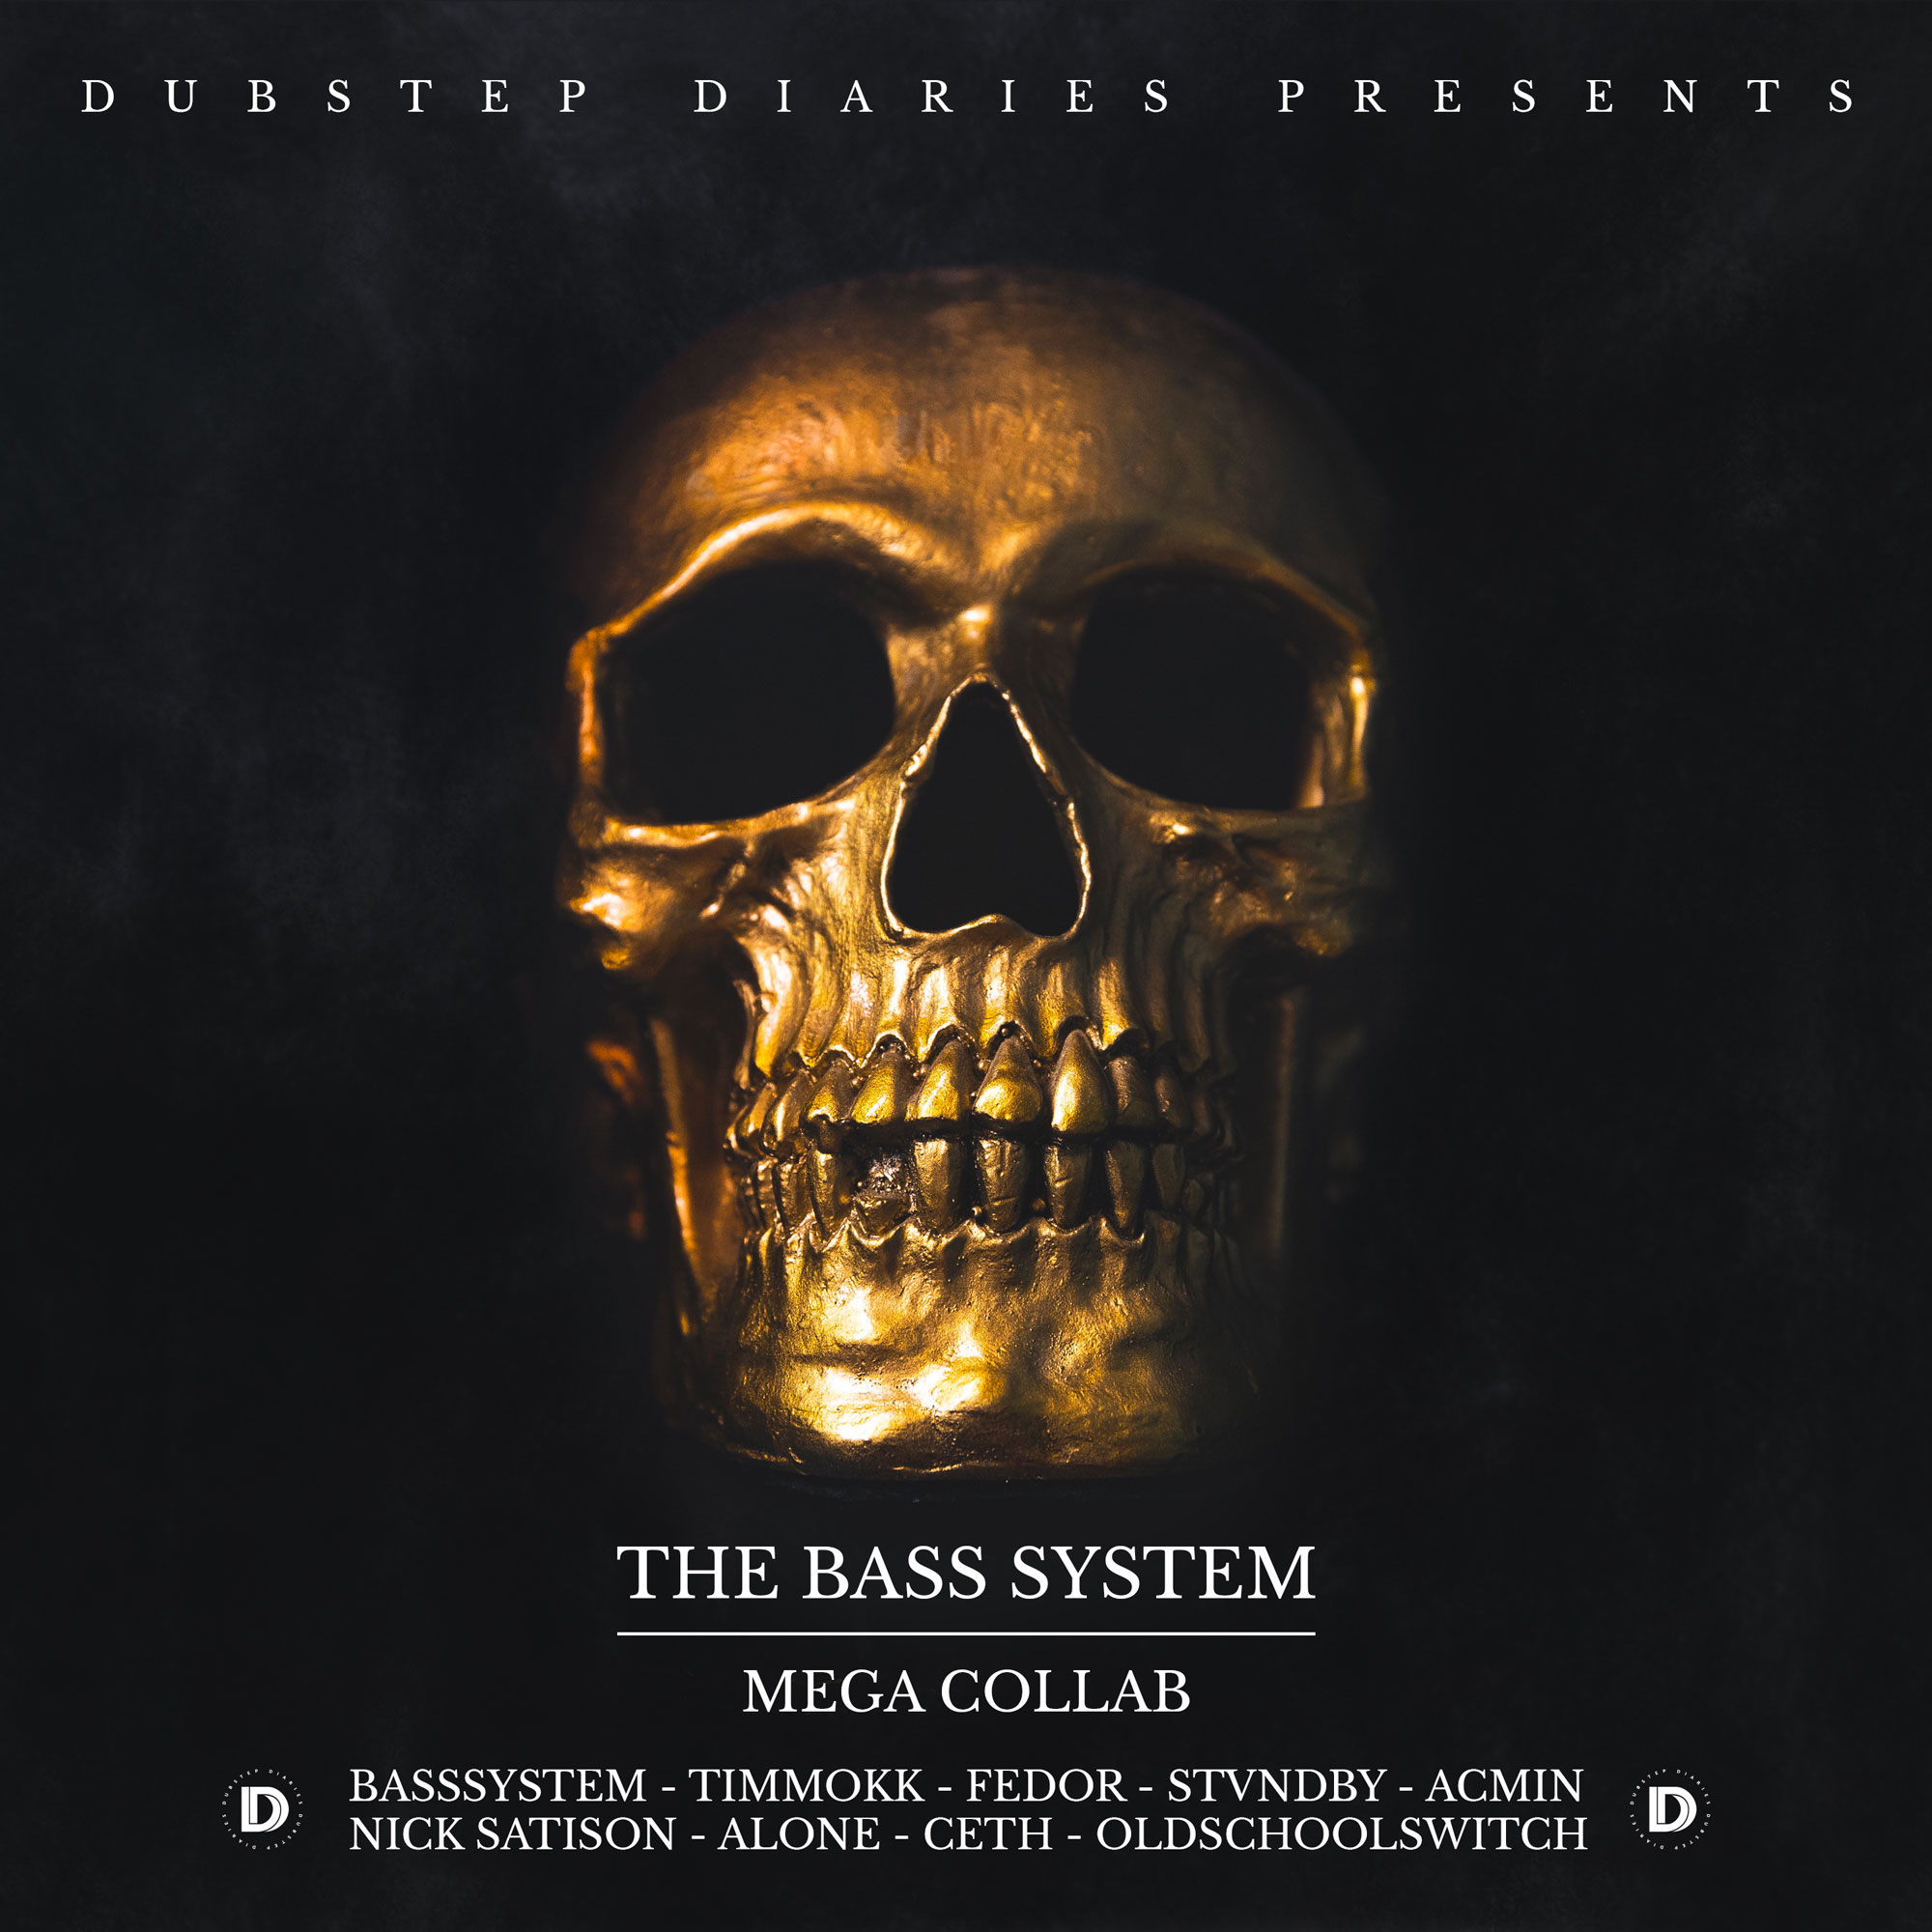 The Bass System Mega Collab